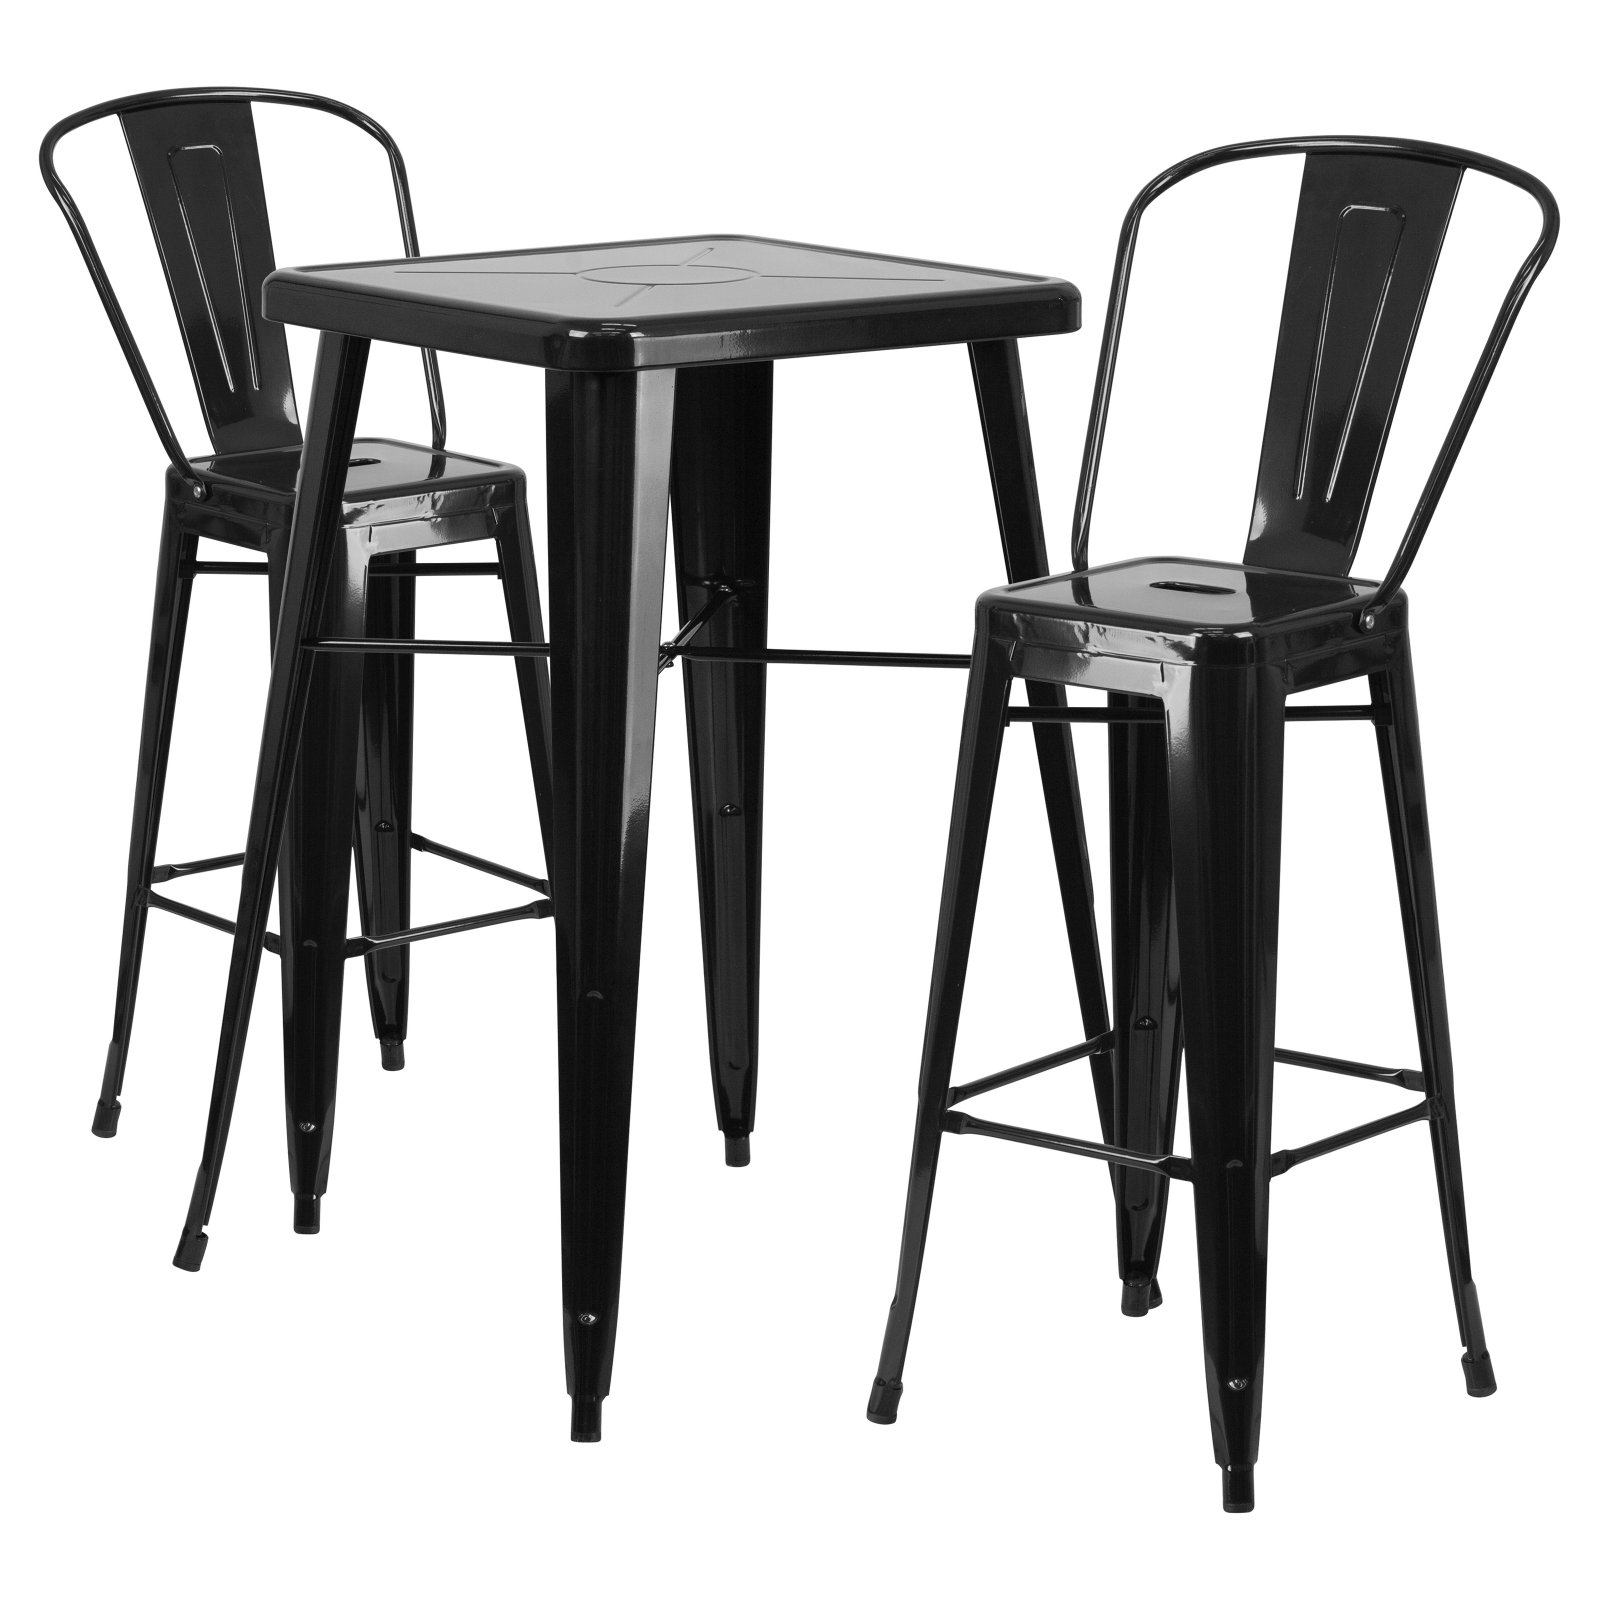 Flash Furniture 23.75u0027u0027 Square Metal Indoor-Outdoor Bar Table Set with 2 Barstools  sc 1 st  Walmart : table and barstool set - Pezcame.Com